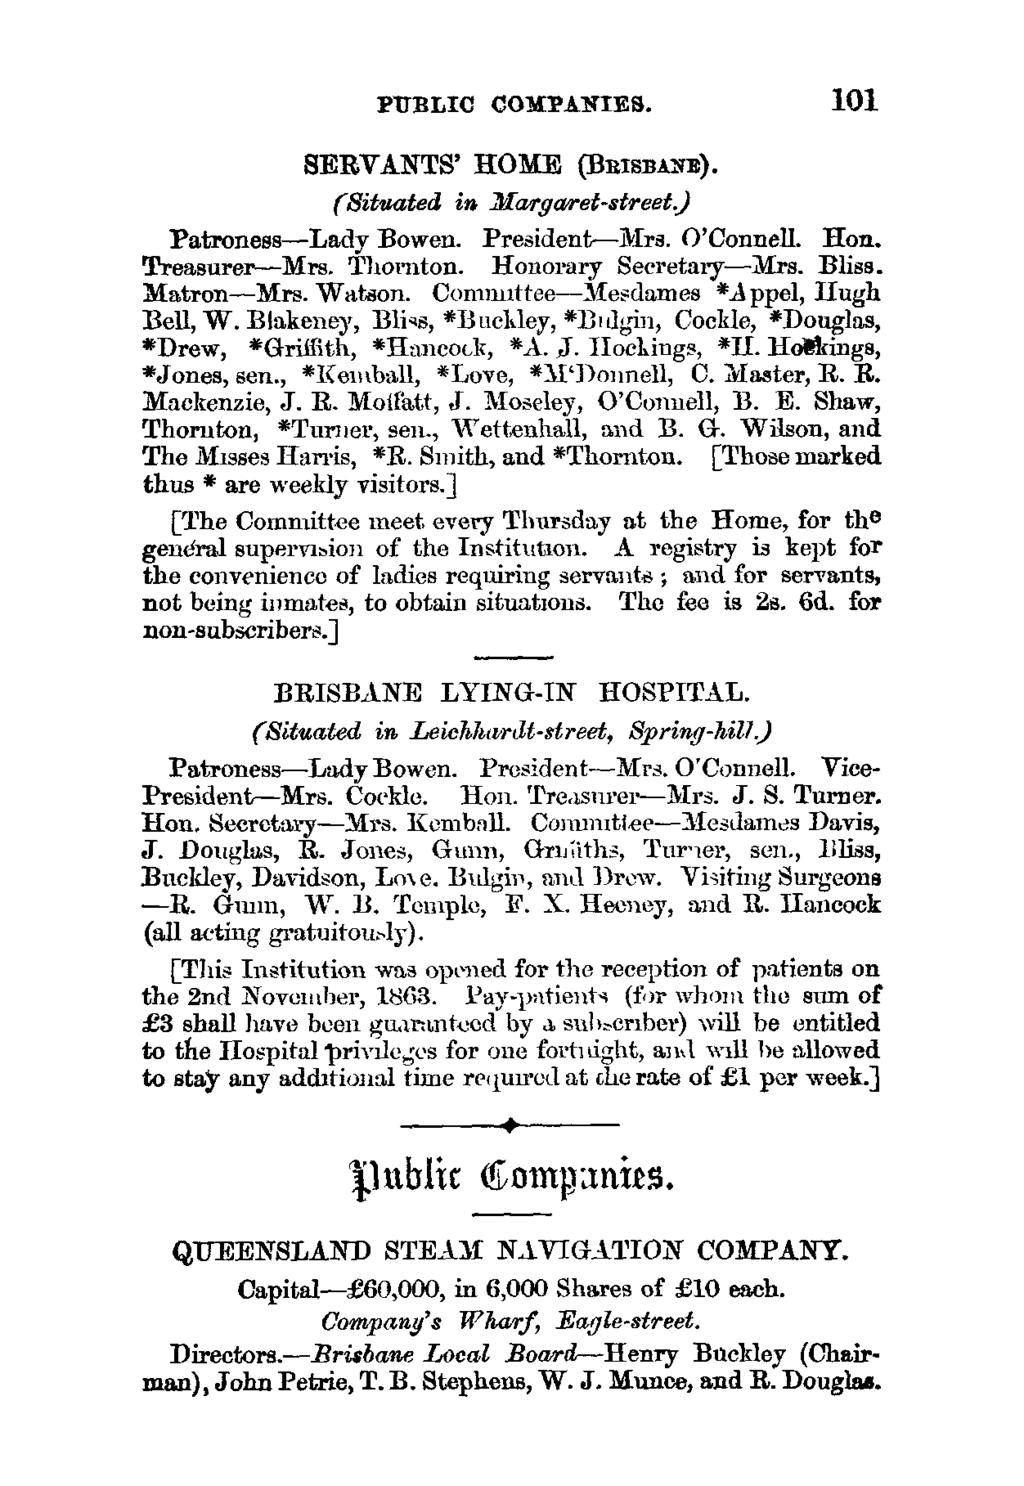 PUBLIC COMPANIES. 101 SERVANTS ' HOME (BRtssA -rn). (Situated in Margaret- street.) Patroness -Lady Bowen. President-Mrs. O'Connell. Hon. Treasurer -Mrs. Thornton. Honorary Secretary-Mrs. Bliss.